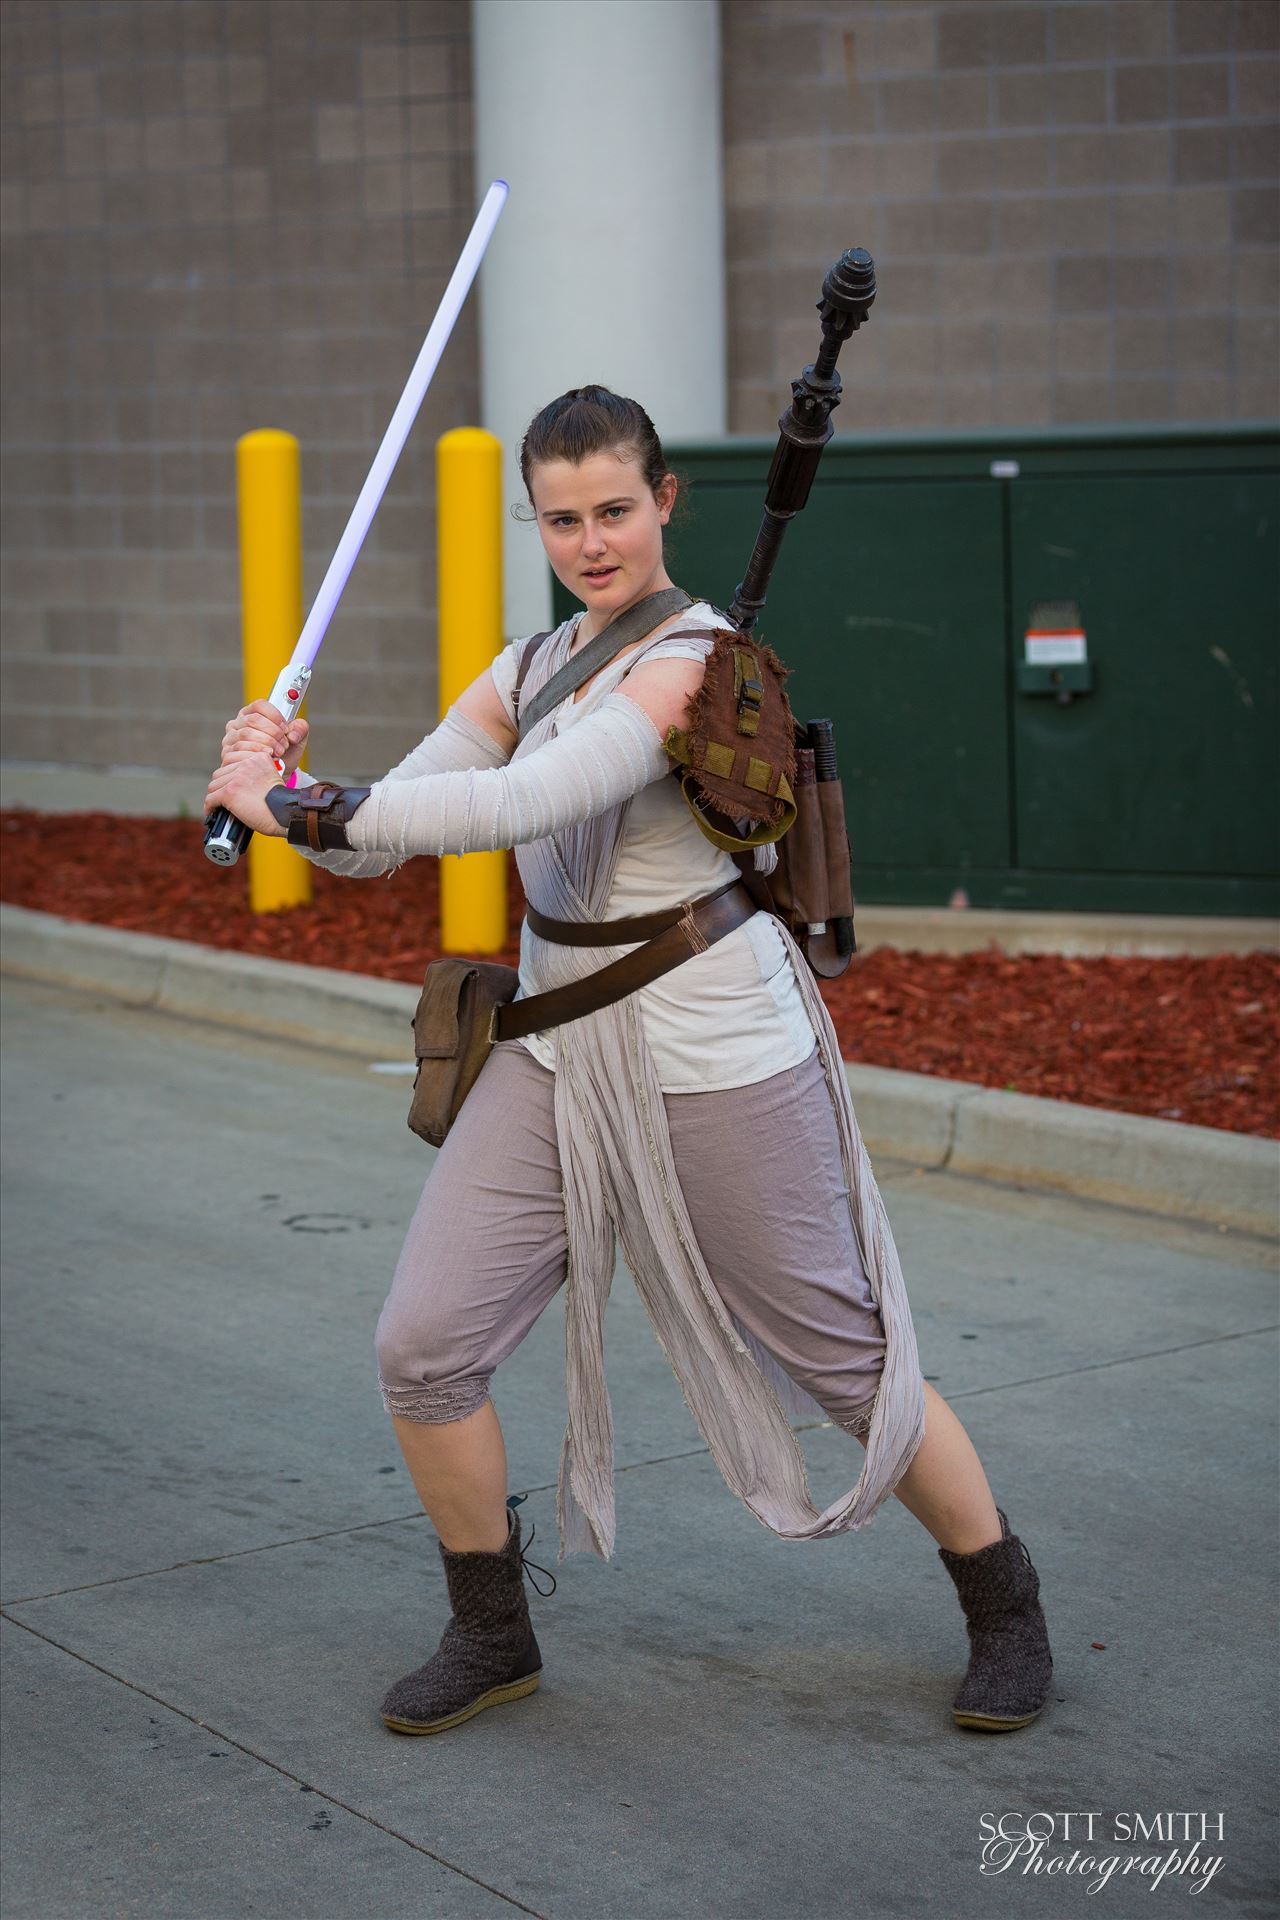 Denver Comic Con 2016 01 - Denver Comic Con 2016 at the Colorado Convention Center. by D Scott Smith